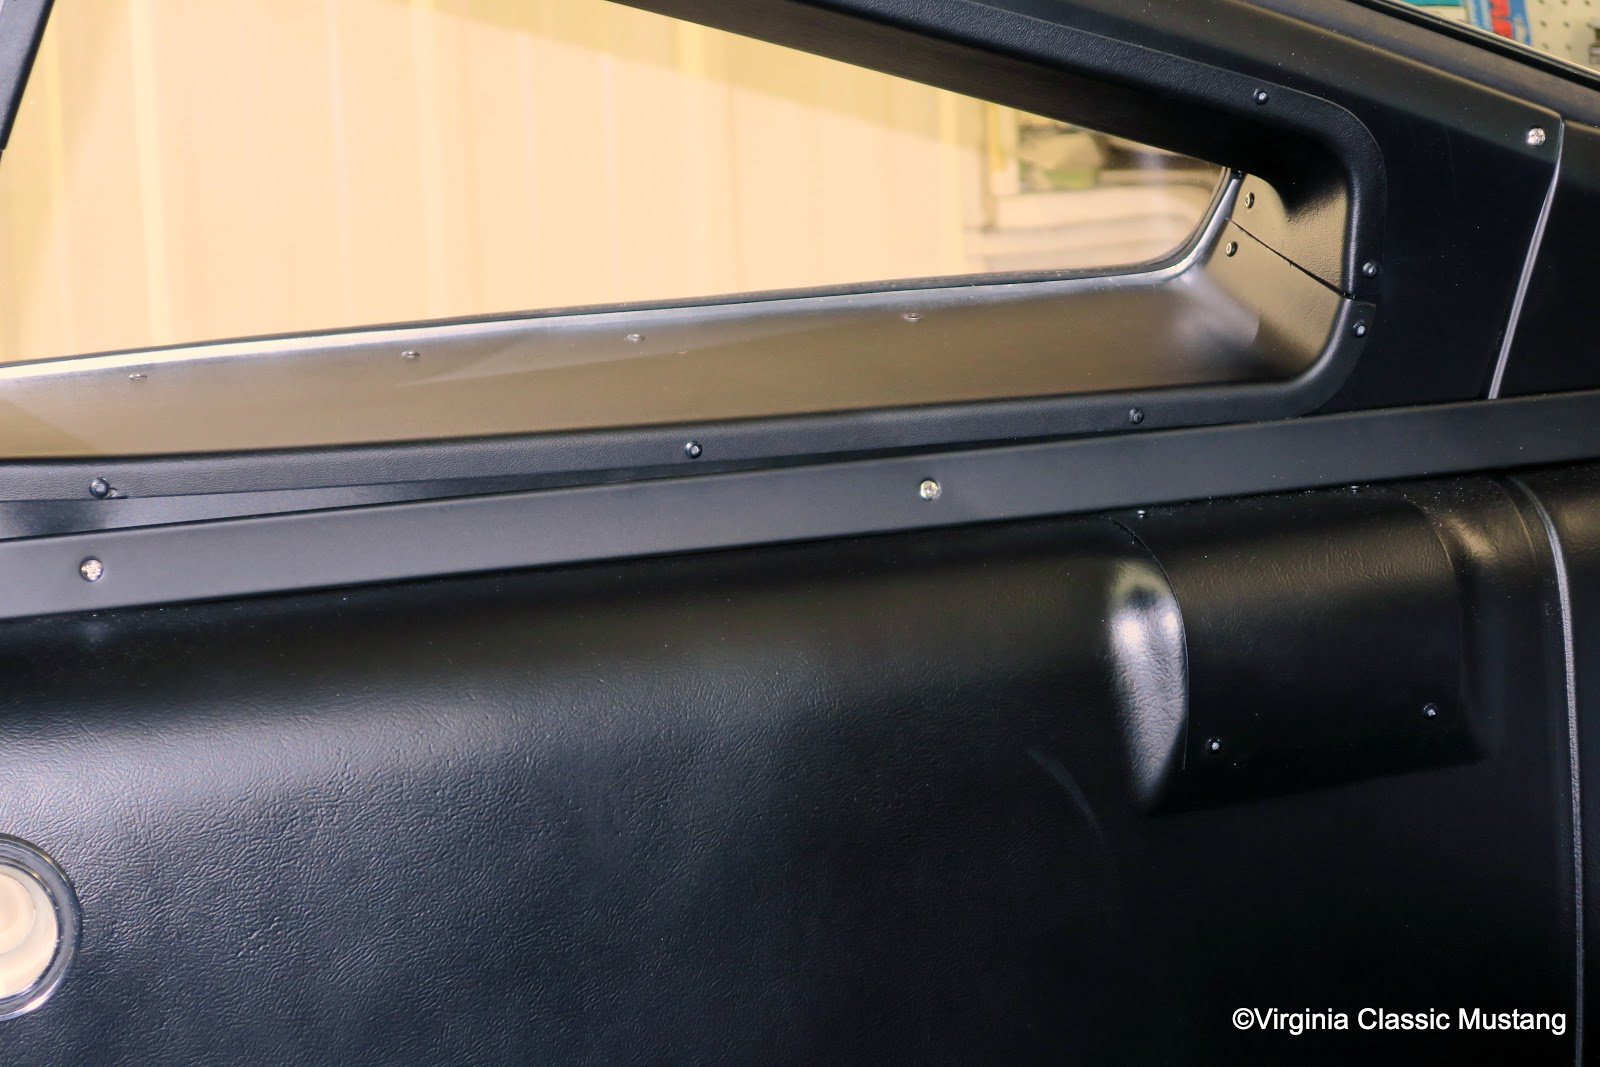 Virginia classic mustang blog just the details 1966 for 1965 mustang window adjustment